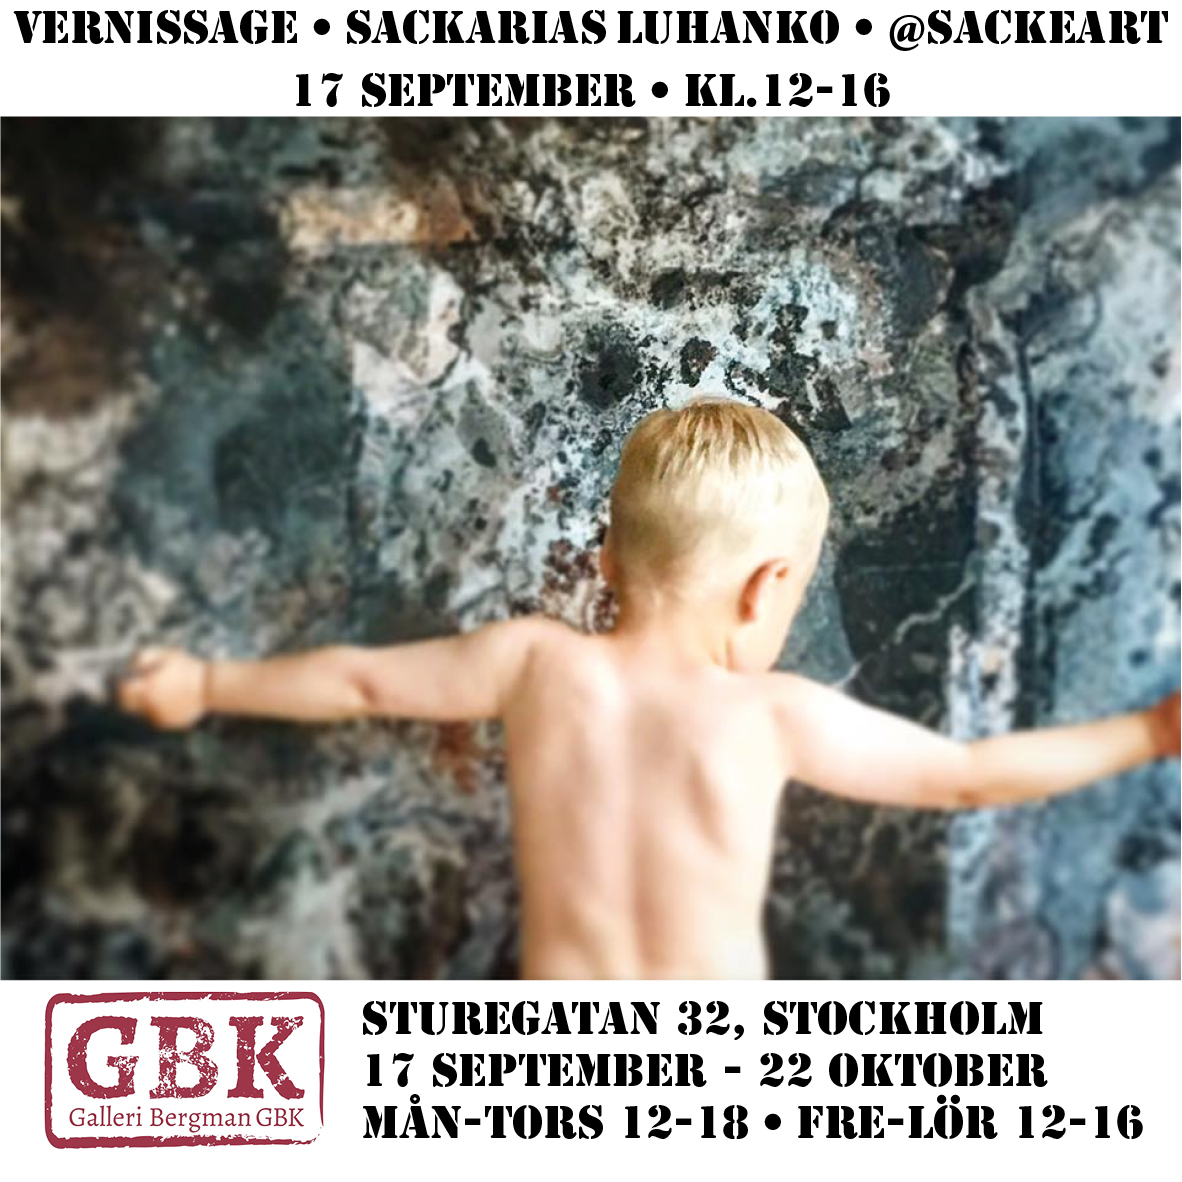 Vernissage Next month! Hope to see you there!